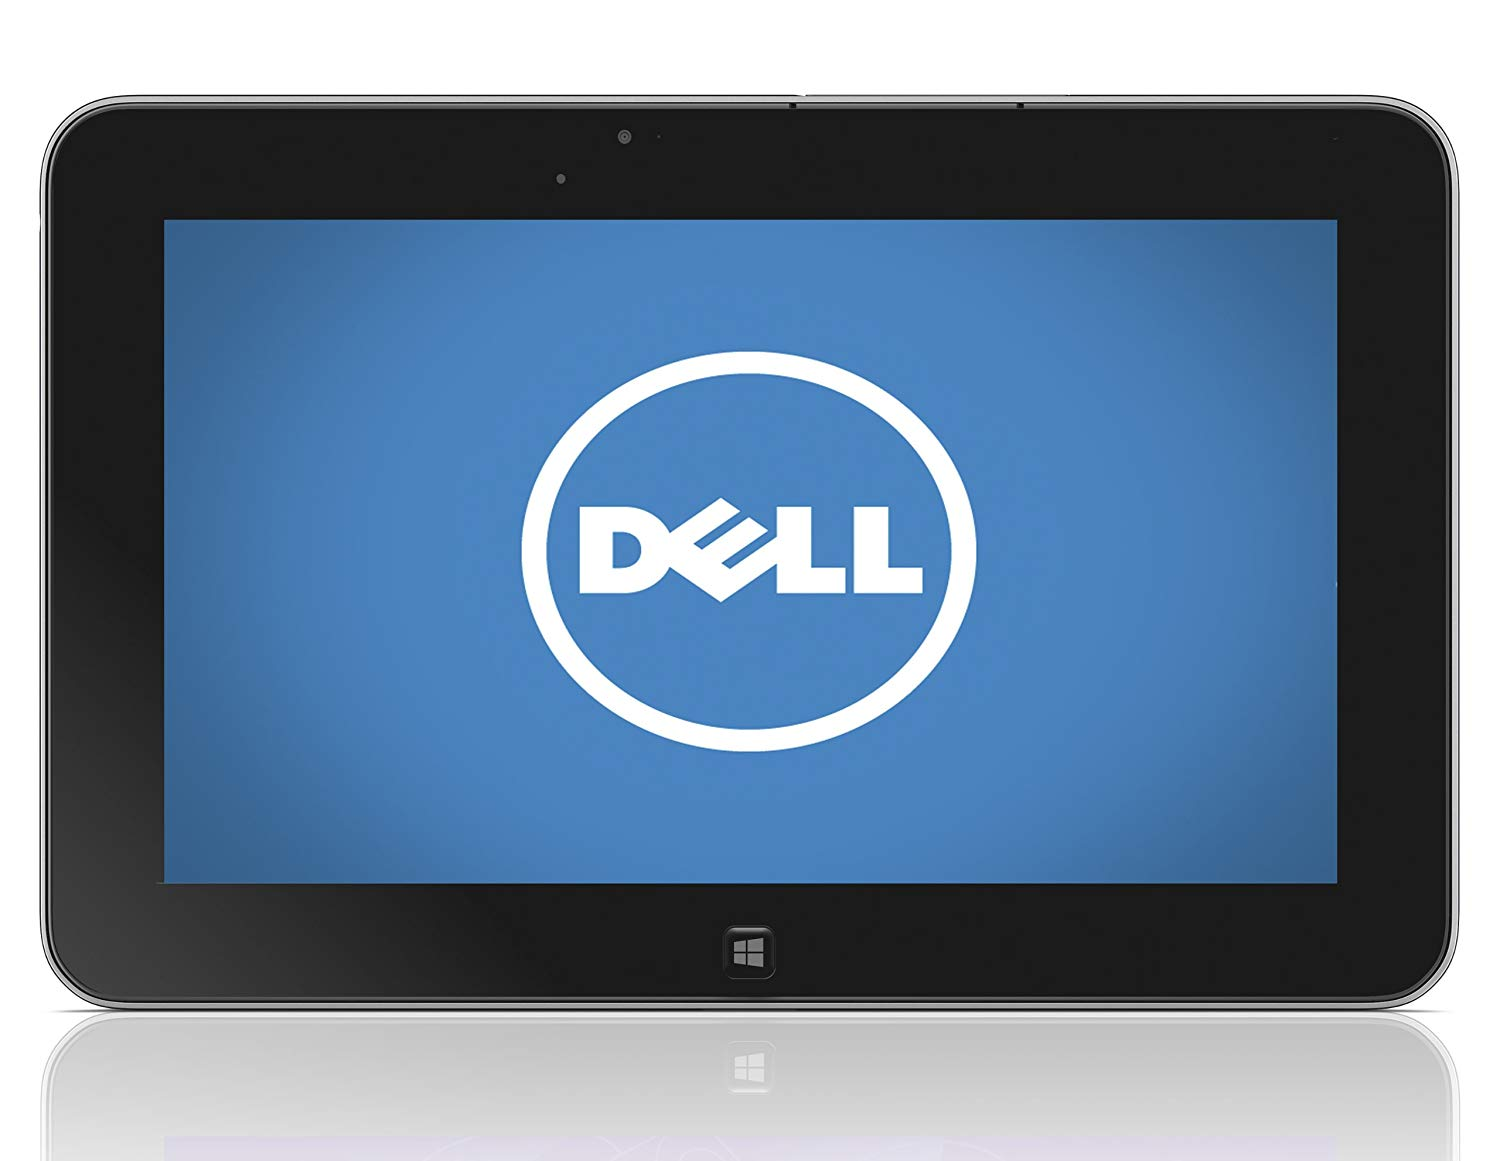 image of Dell tablet